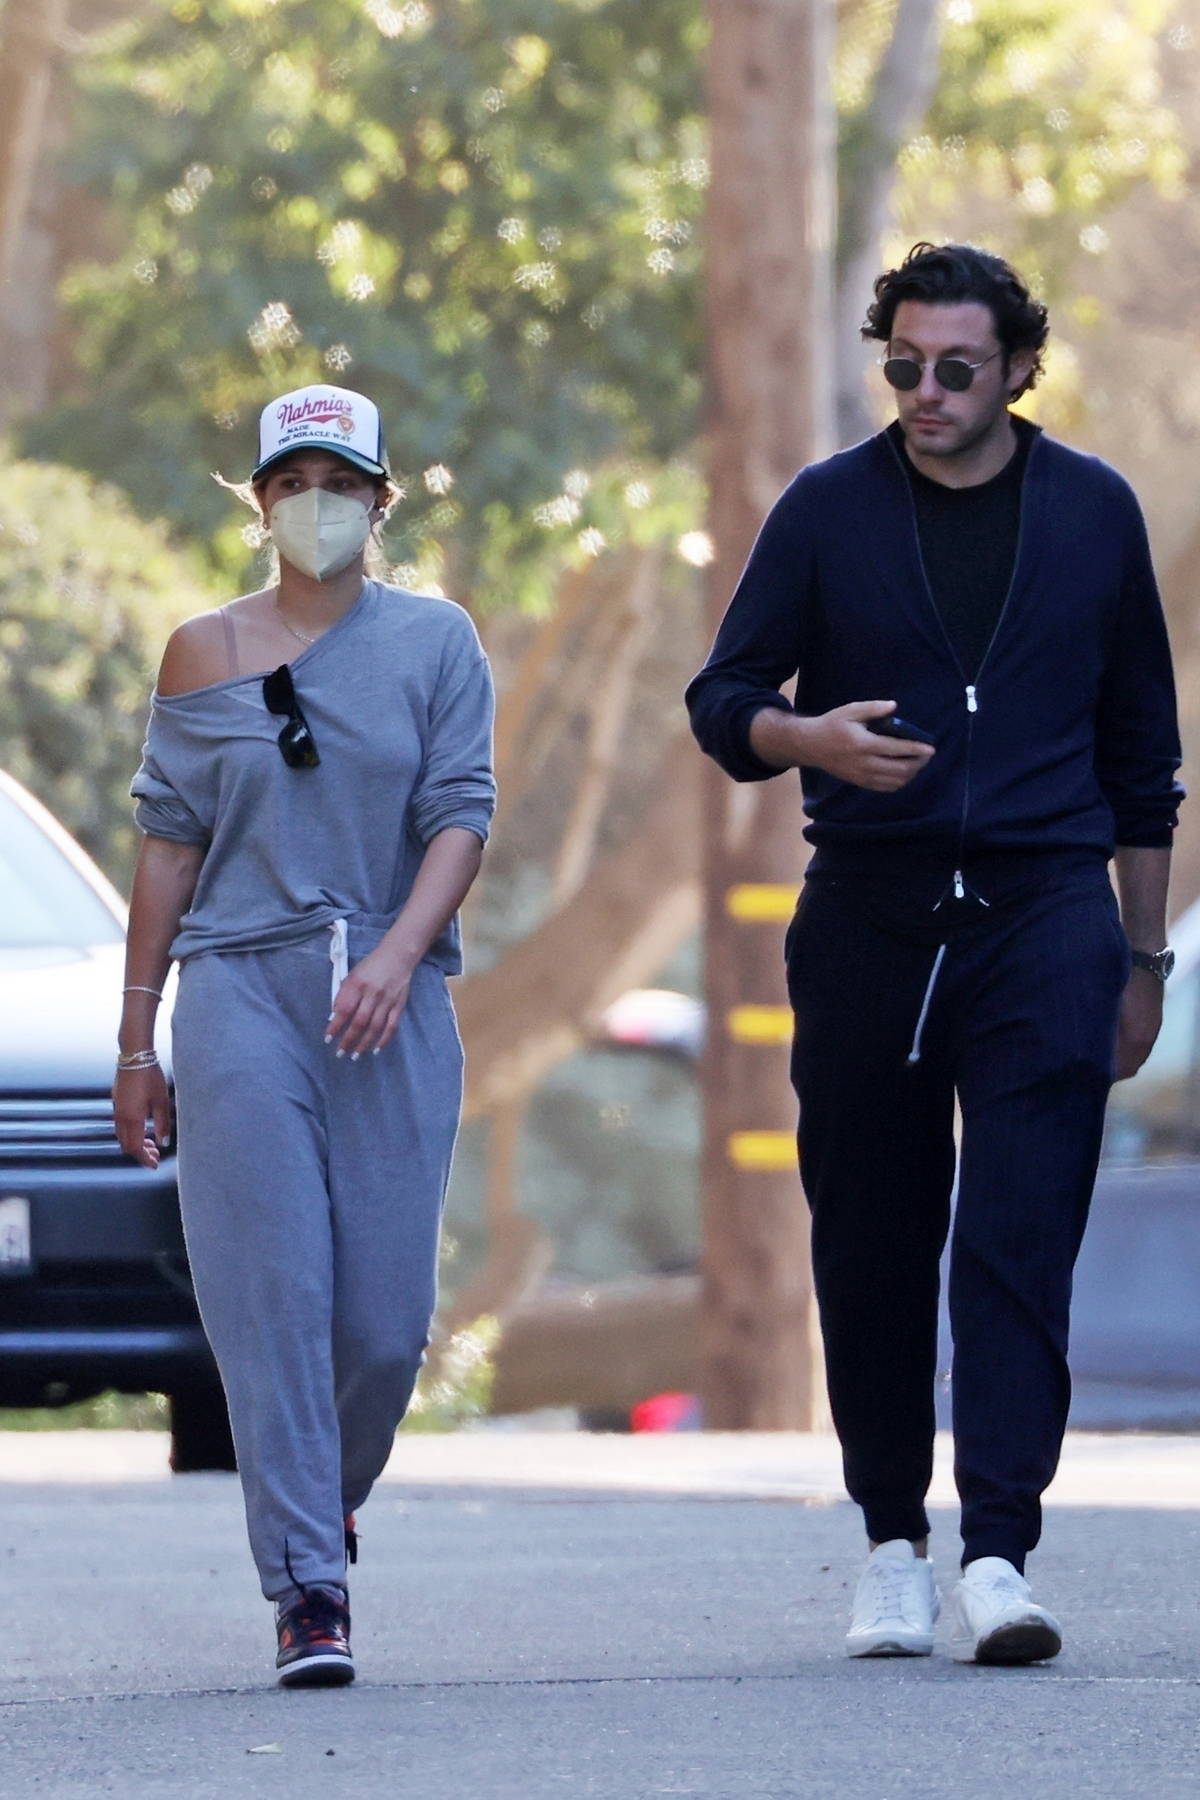 Sofia Richie dresses down in grey sweatsuit while out for an evening stroll with a mystery man in Los Angeles